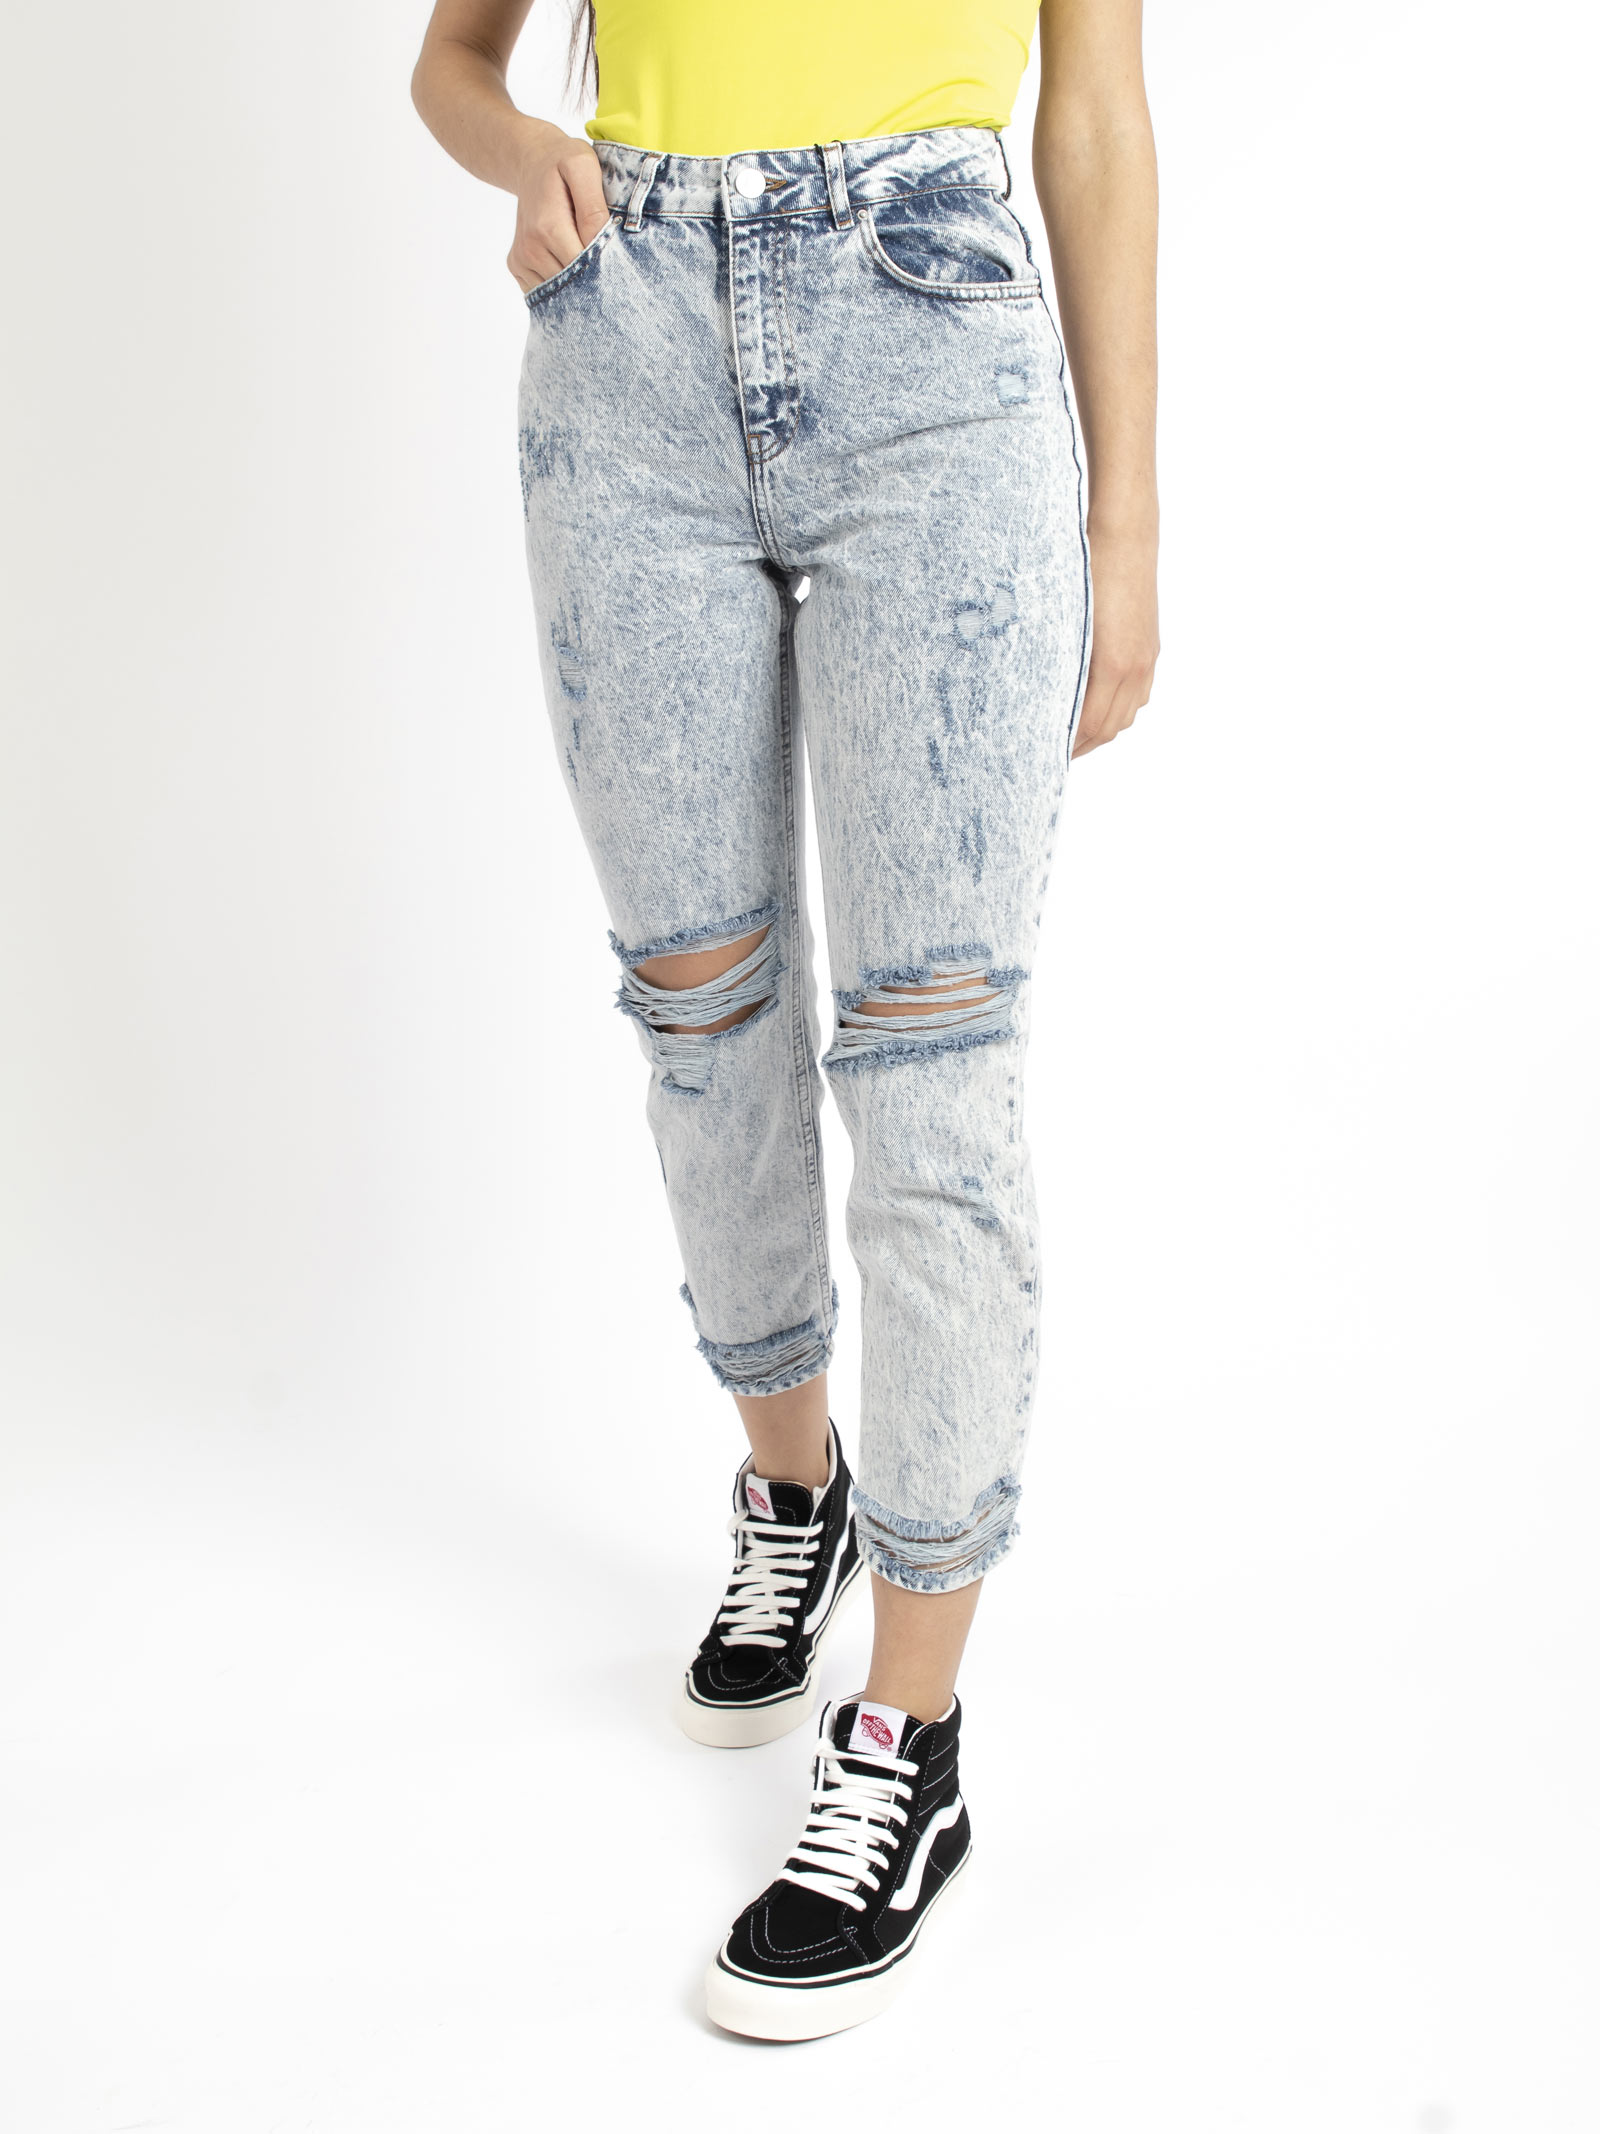 Jeans NOISY MAY | Jeans | 27012025JEANS